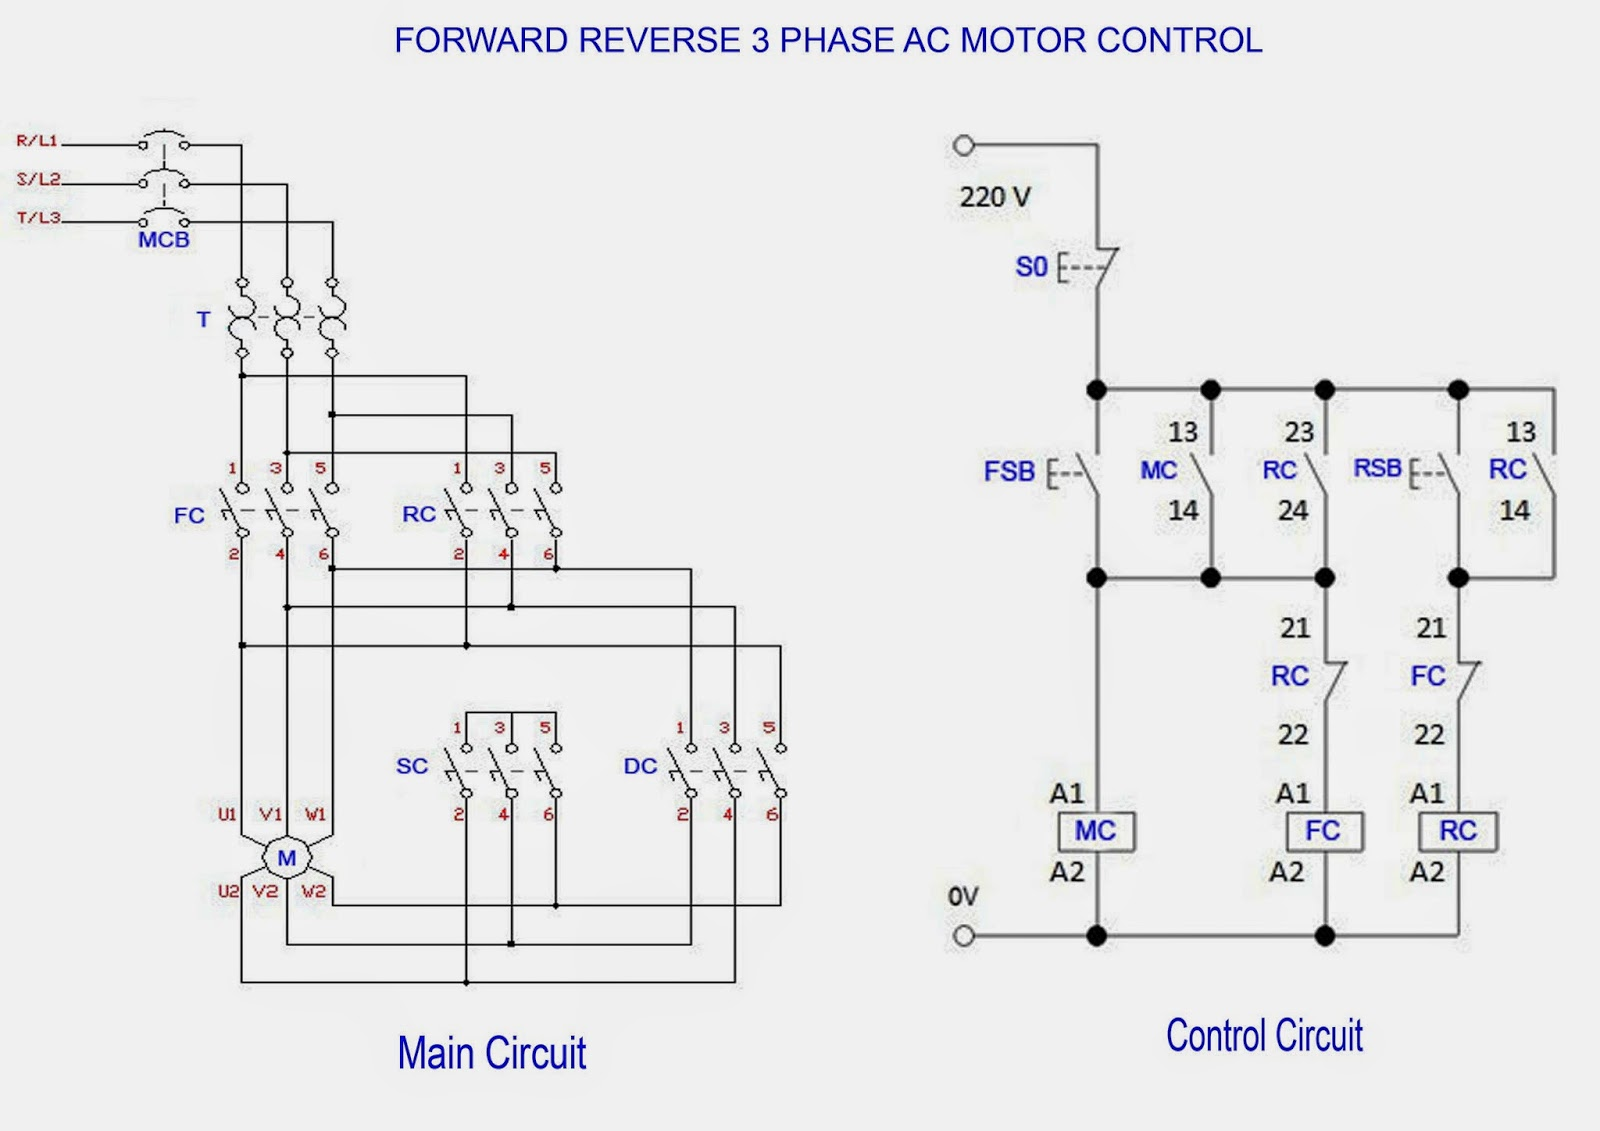 Control Wiring Diagram Of 3 Phase Motor : Forward reverse phase ac motor control circuit diagram